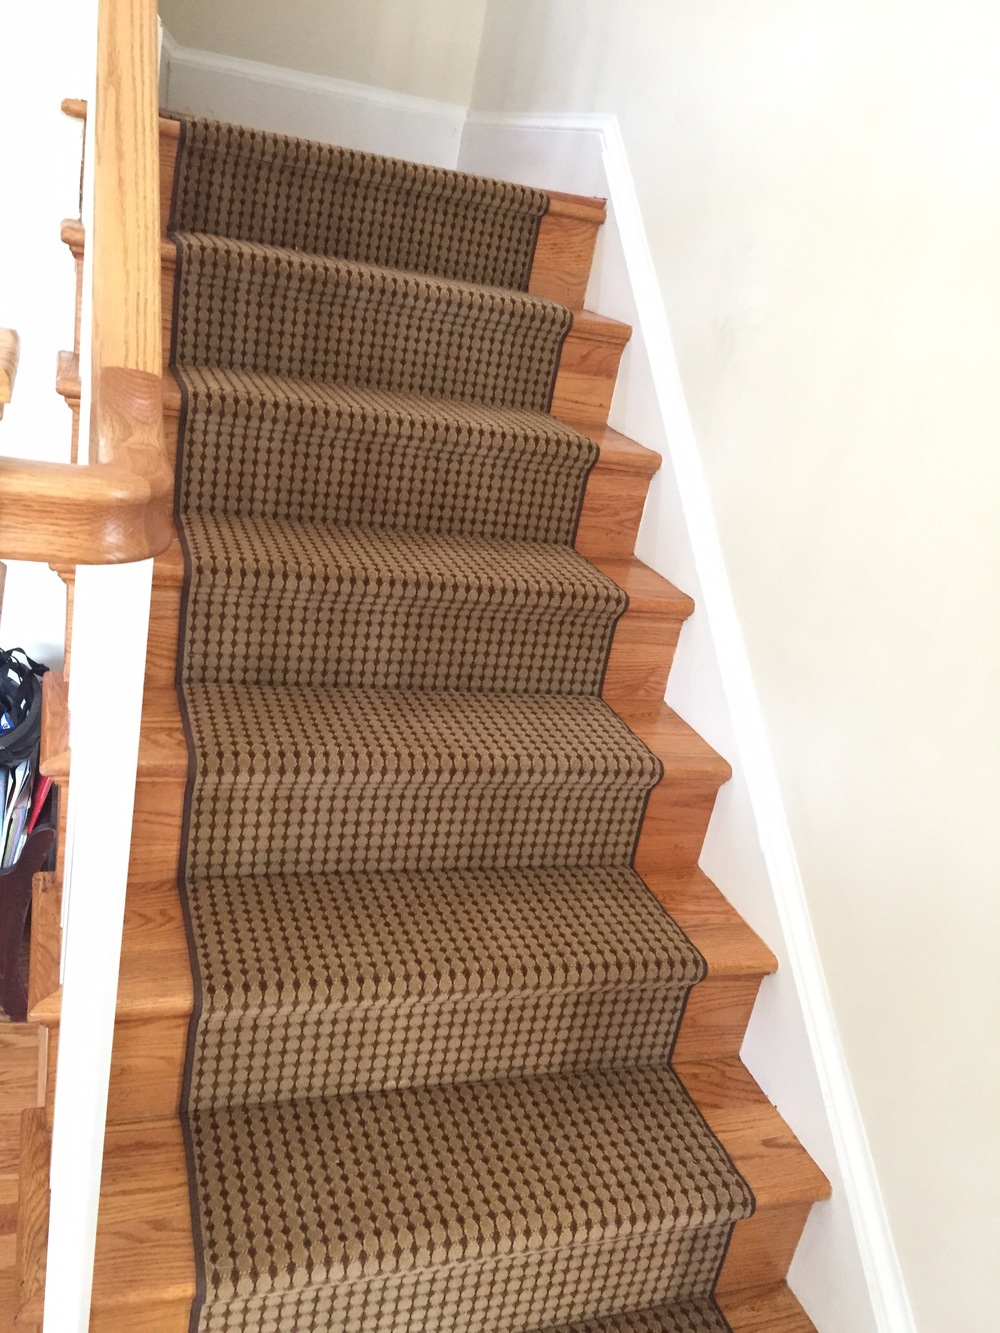 1 - Carpet Stair Runner.jpg